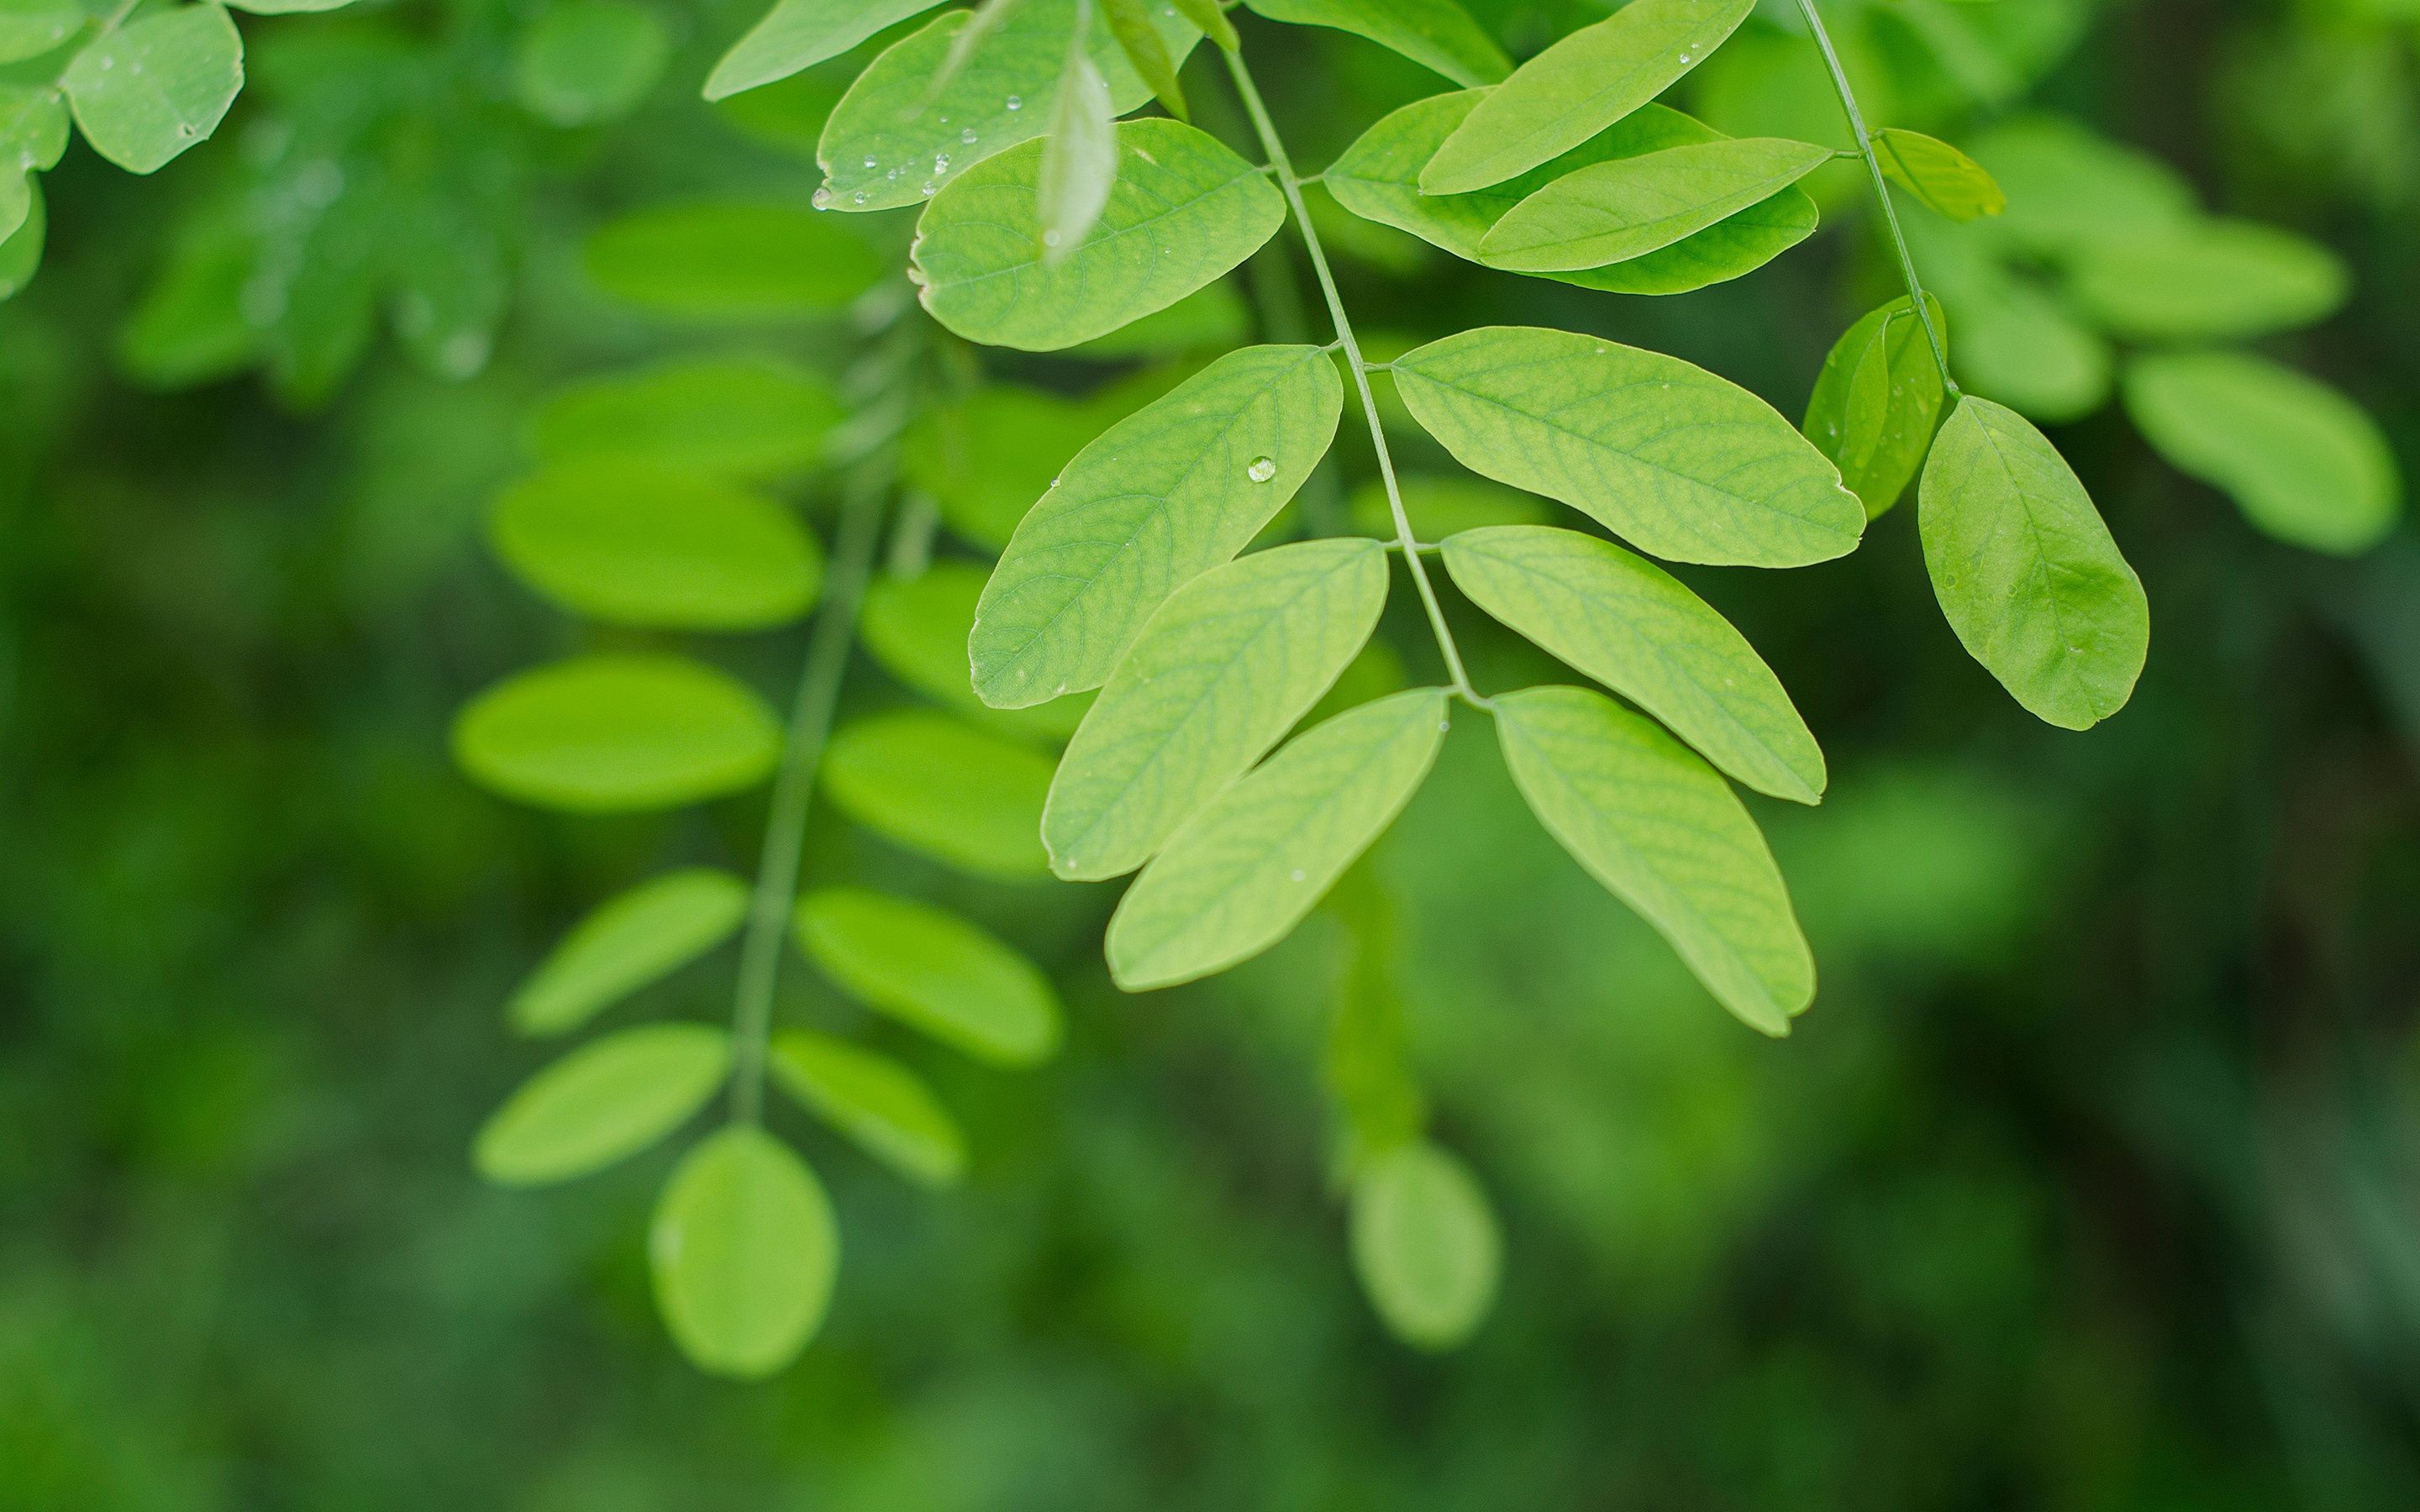 149037 download wallpaper Leaves, Macro, Branch screensavers and pictures for free